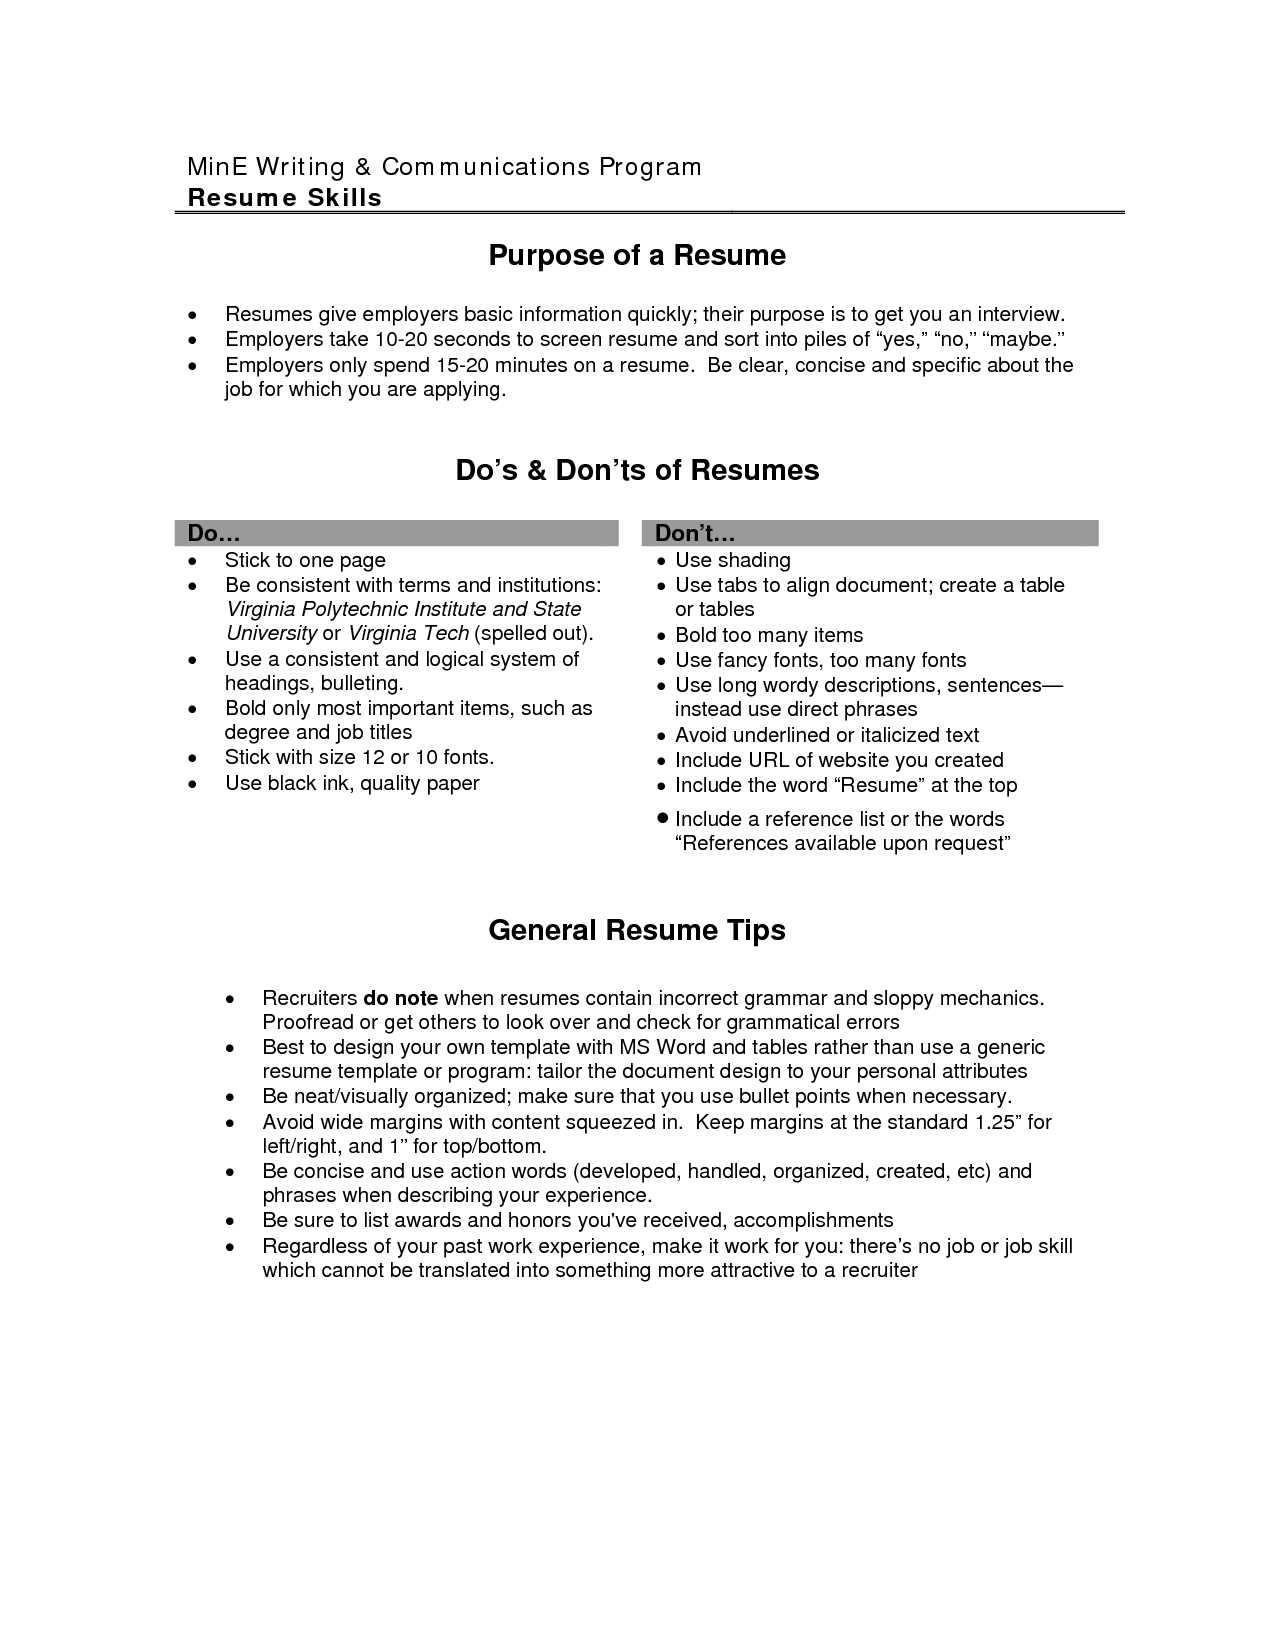 Good Objective For Resume Writing A Great Objective For Resume Good Objective Resume Yeni Mescale Objectives Resumes Your Outline Free Examples Blank Template Wizard Nice Effective Layout Professiona good objective for resume|wikiresume.com